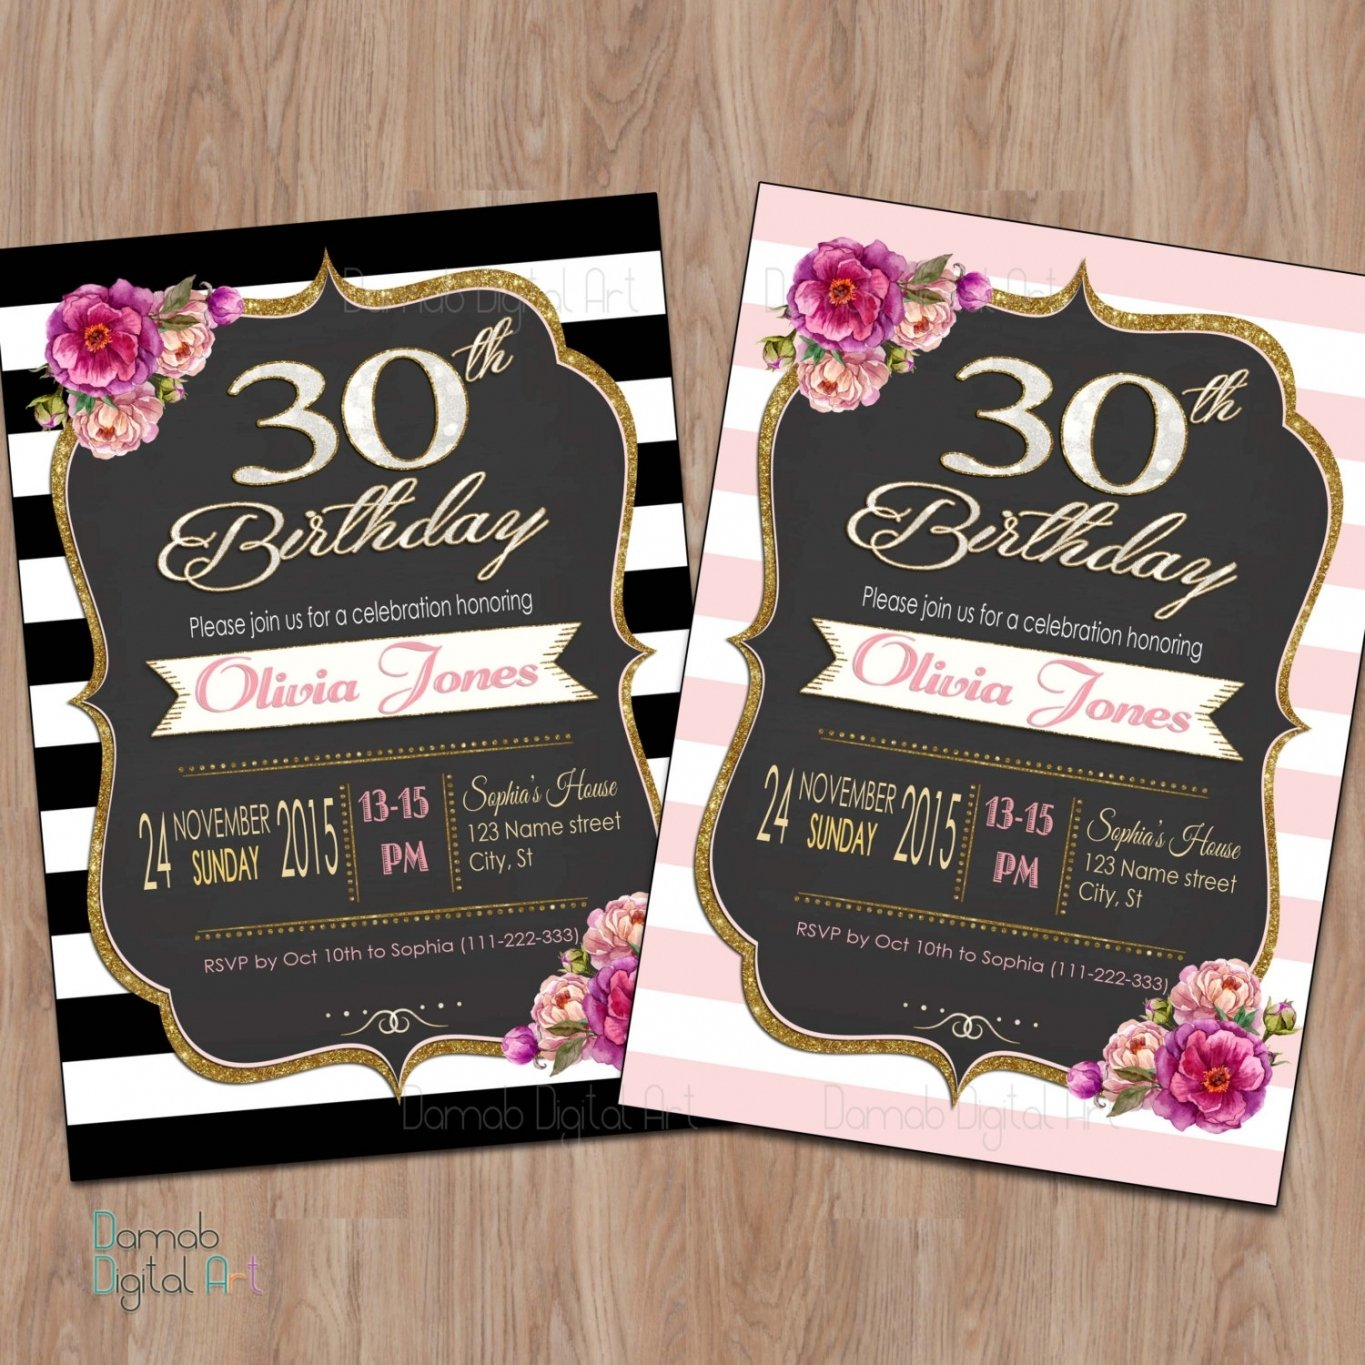 10 Fabulous Ideas For 30Th Birthday Party For Her tips to create 30th birthday party invitations for her ideas 2020